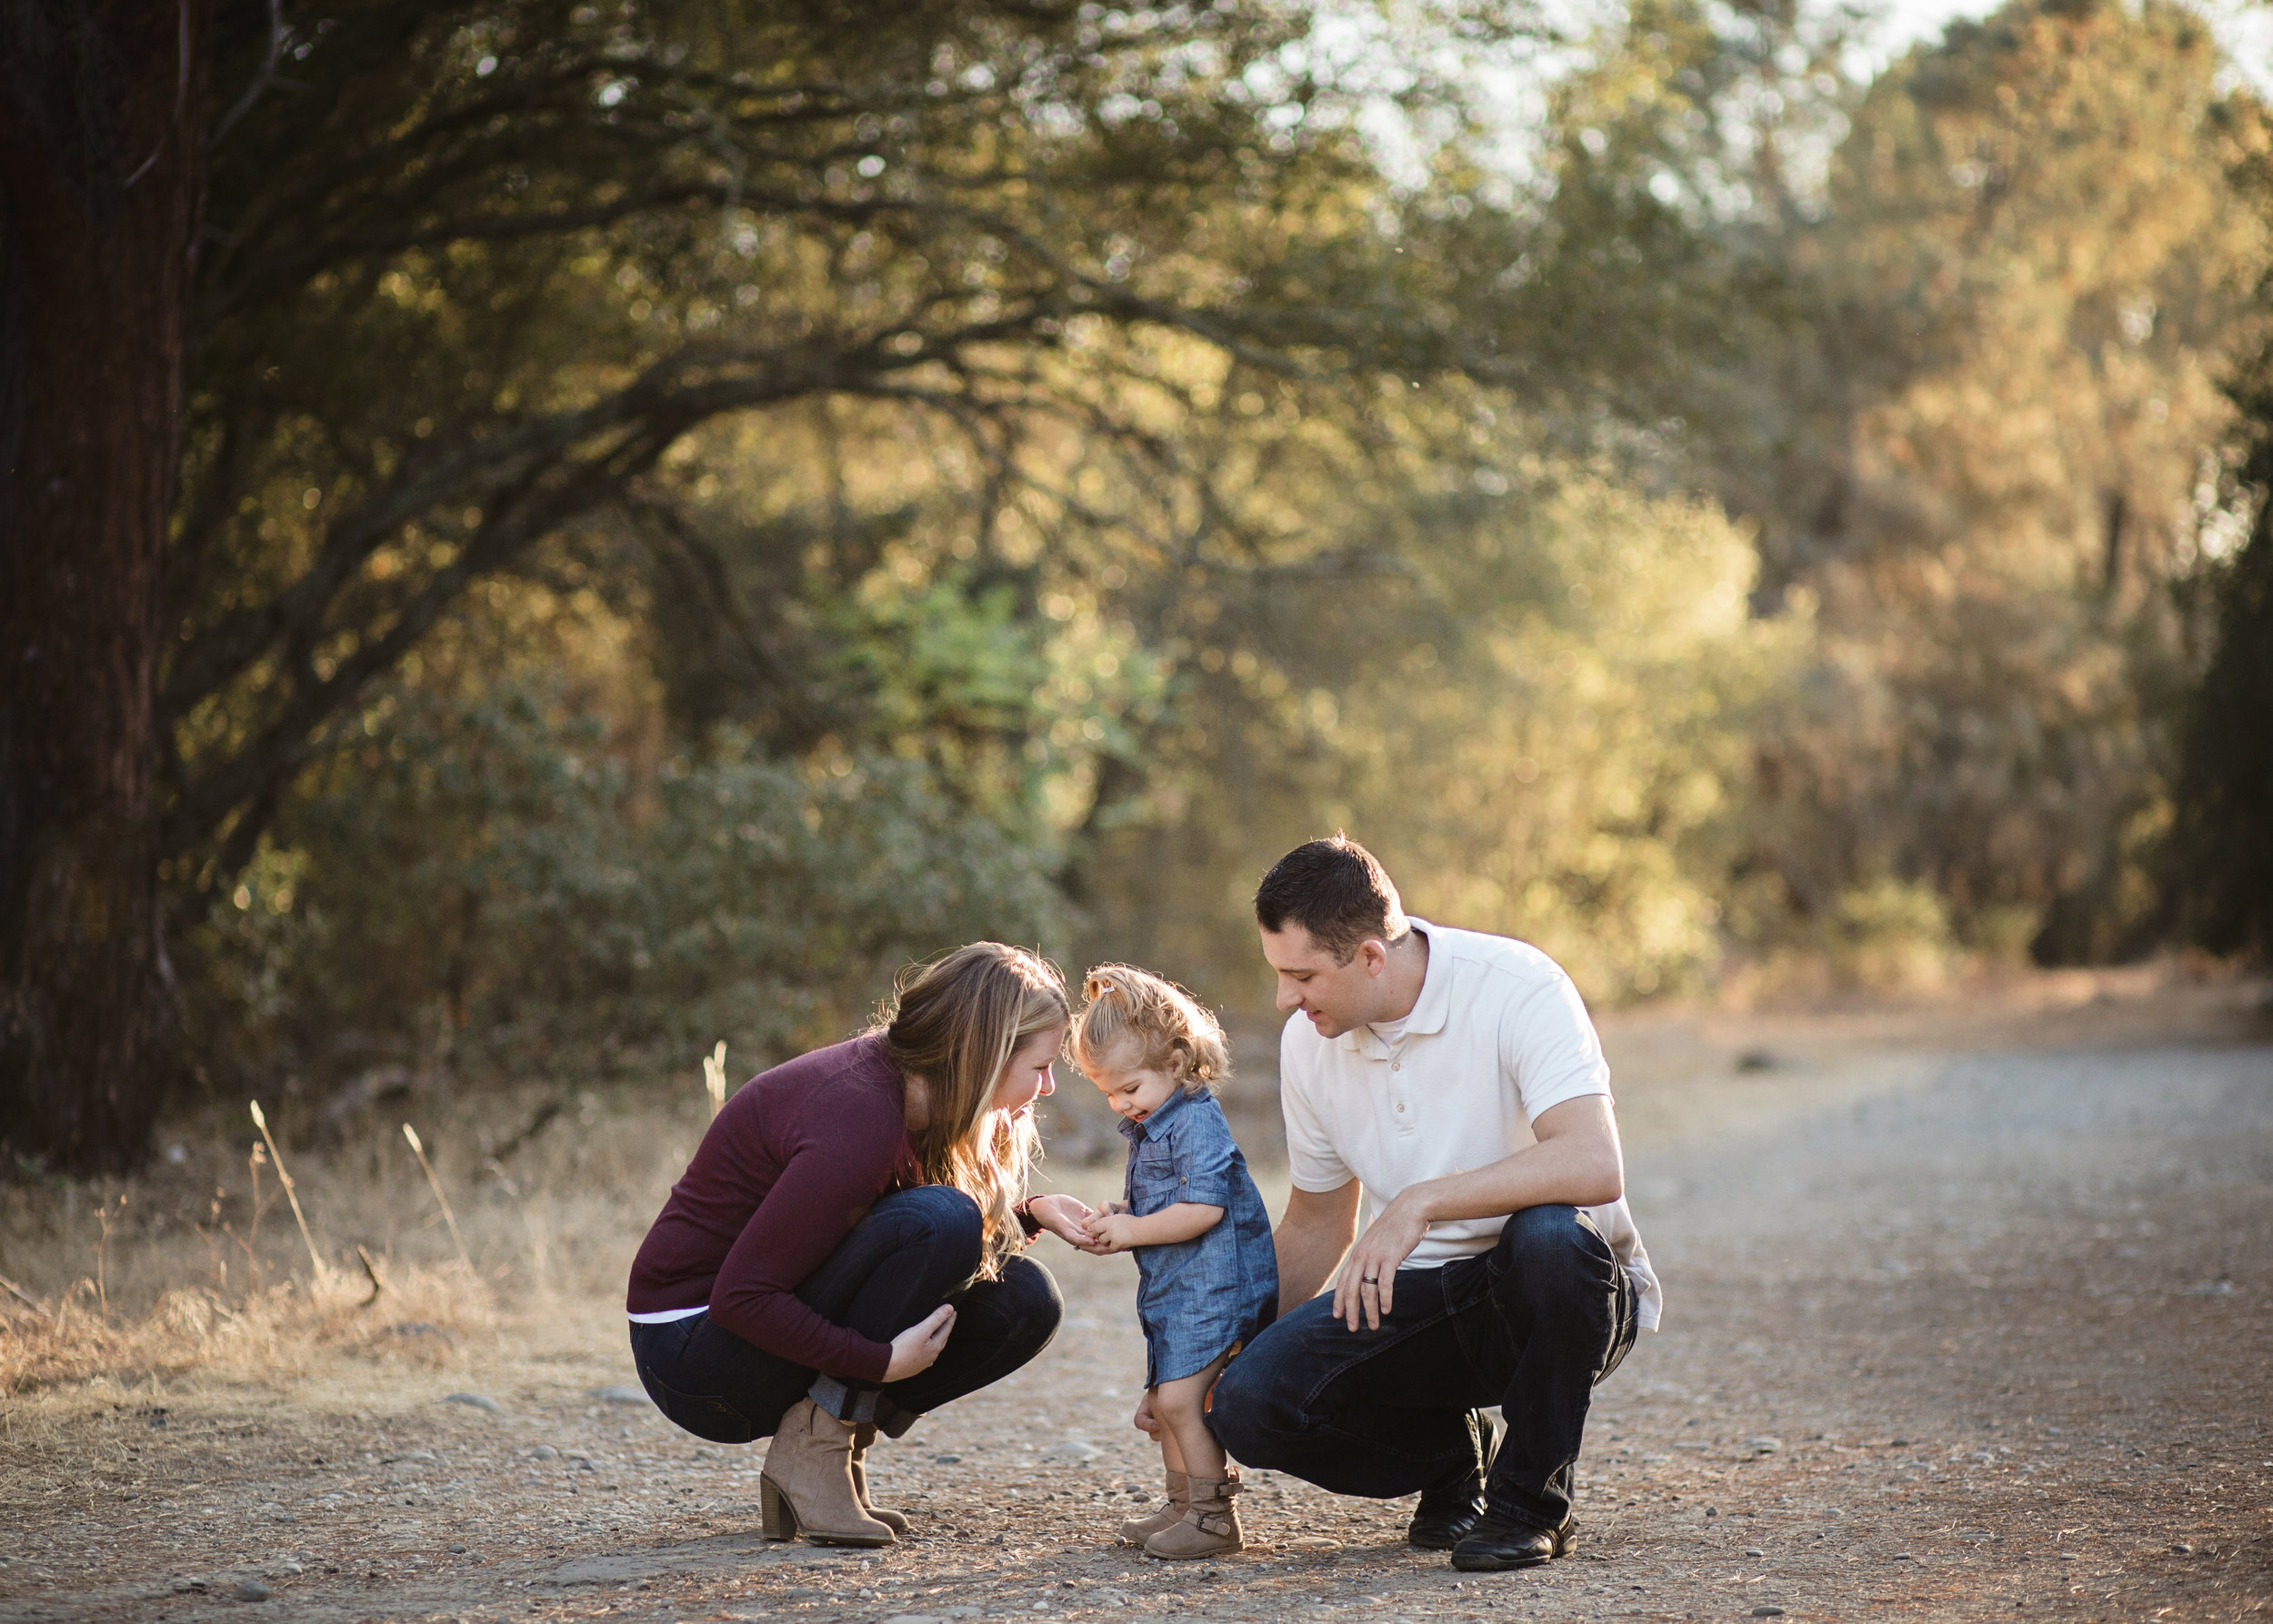 San Francisco Bay Area Pleasanton Family Photographer 0001.JPG